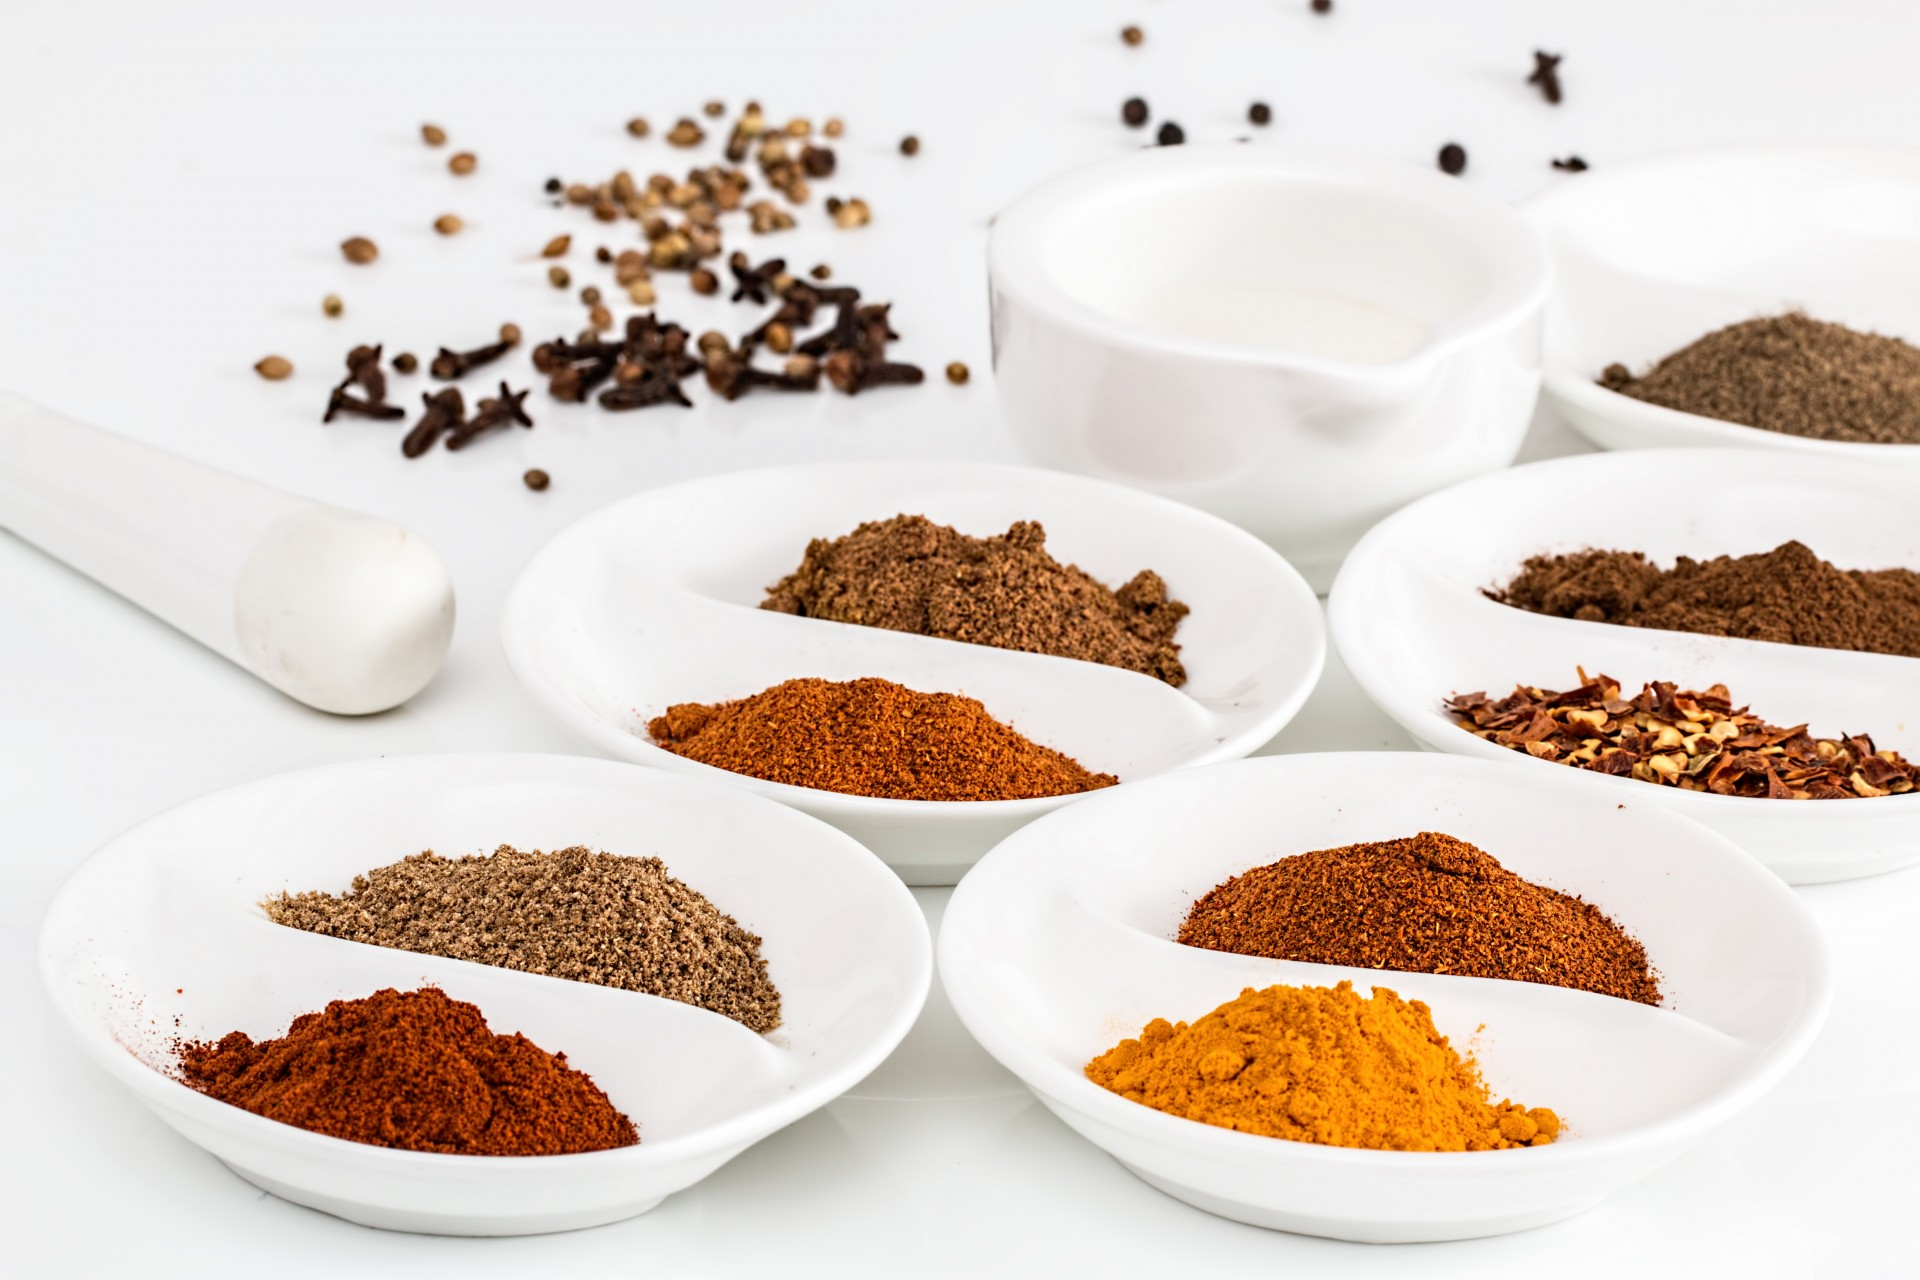 cooking-spices liveedit_copy1